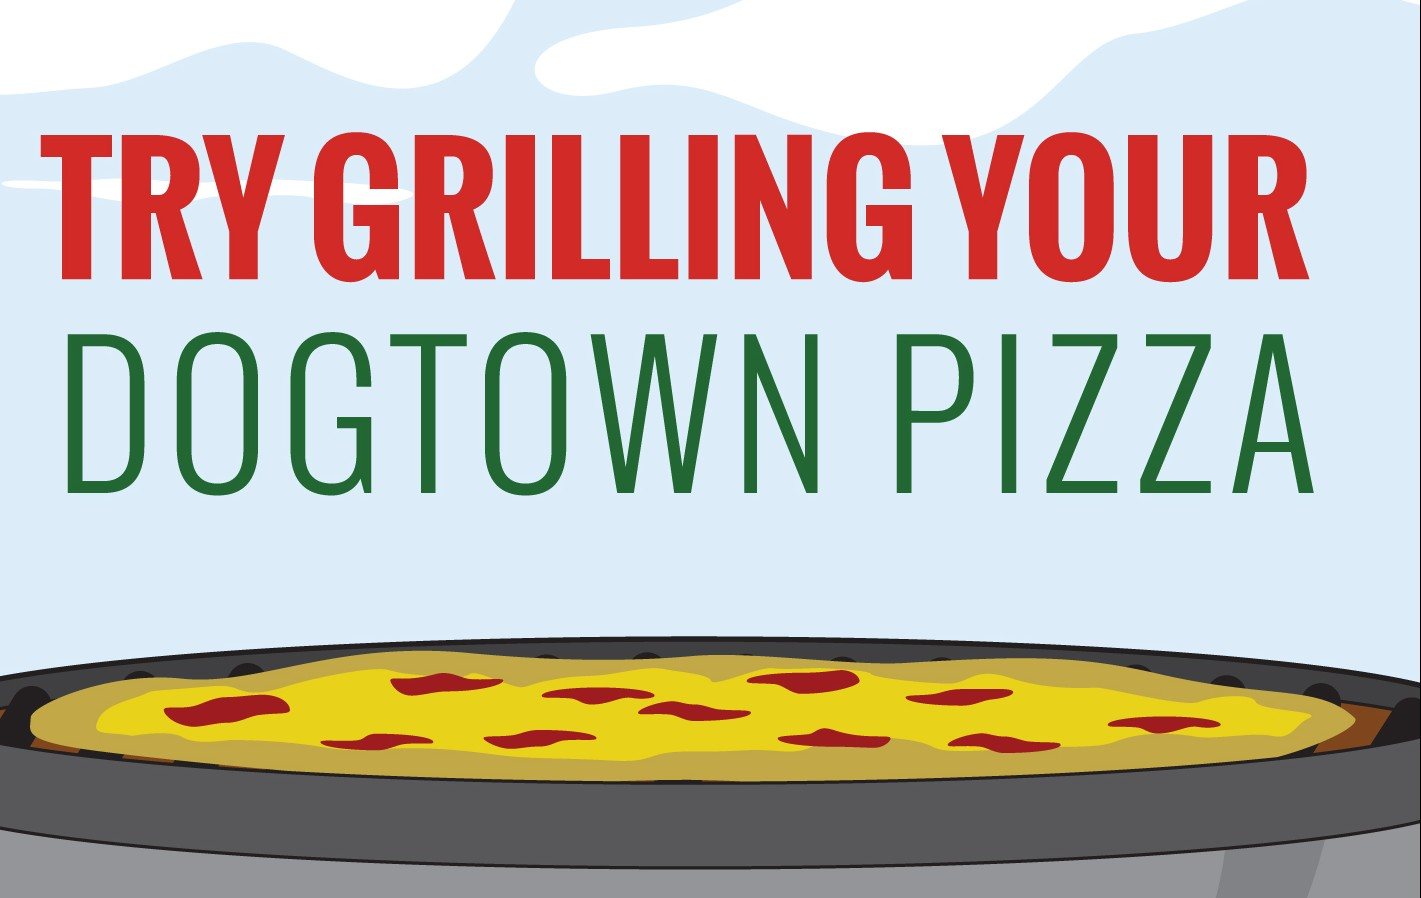 Turn Off The Oven: Try Grilling Pizza!